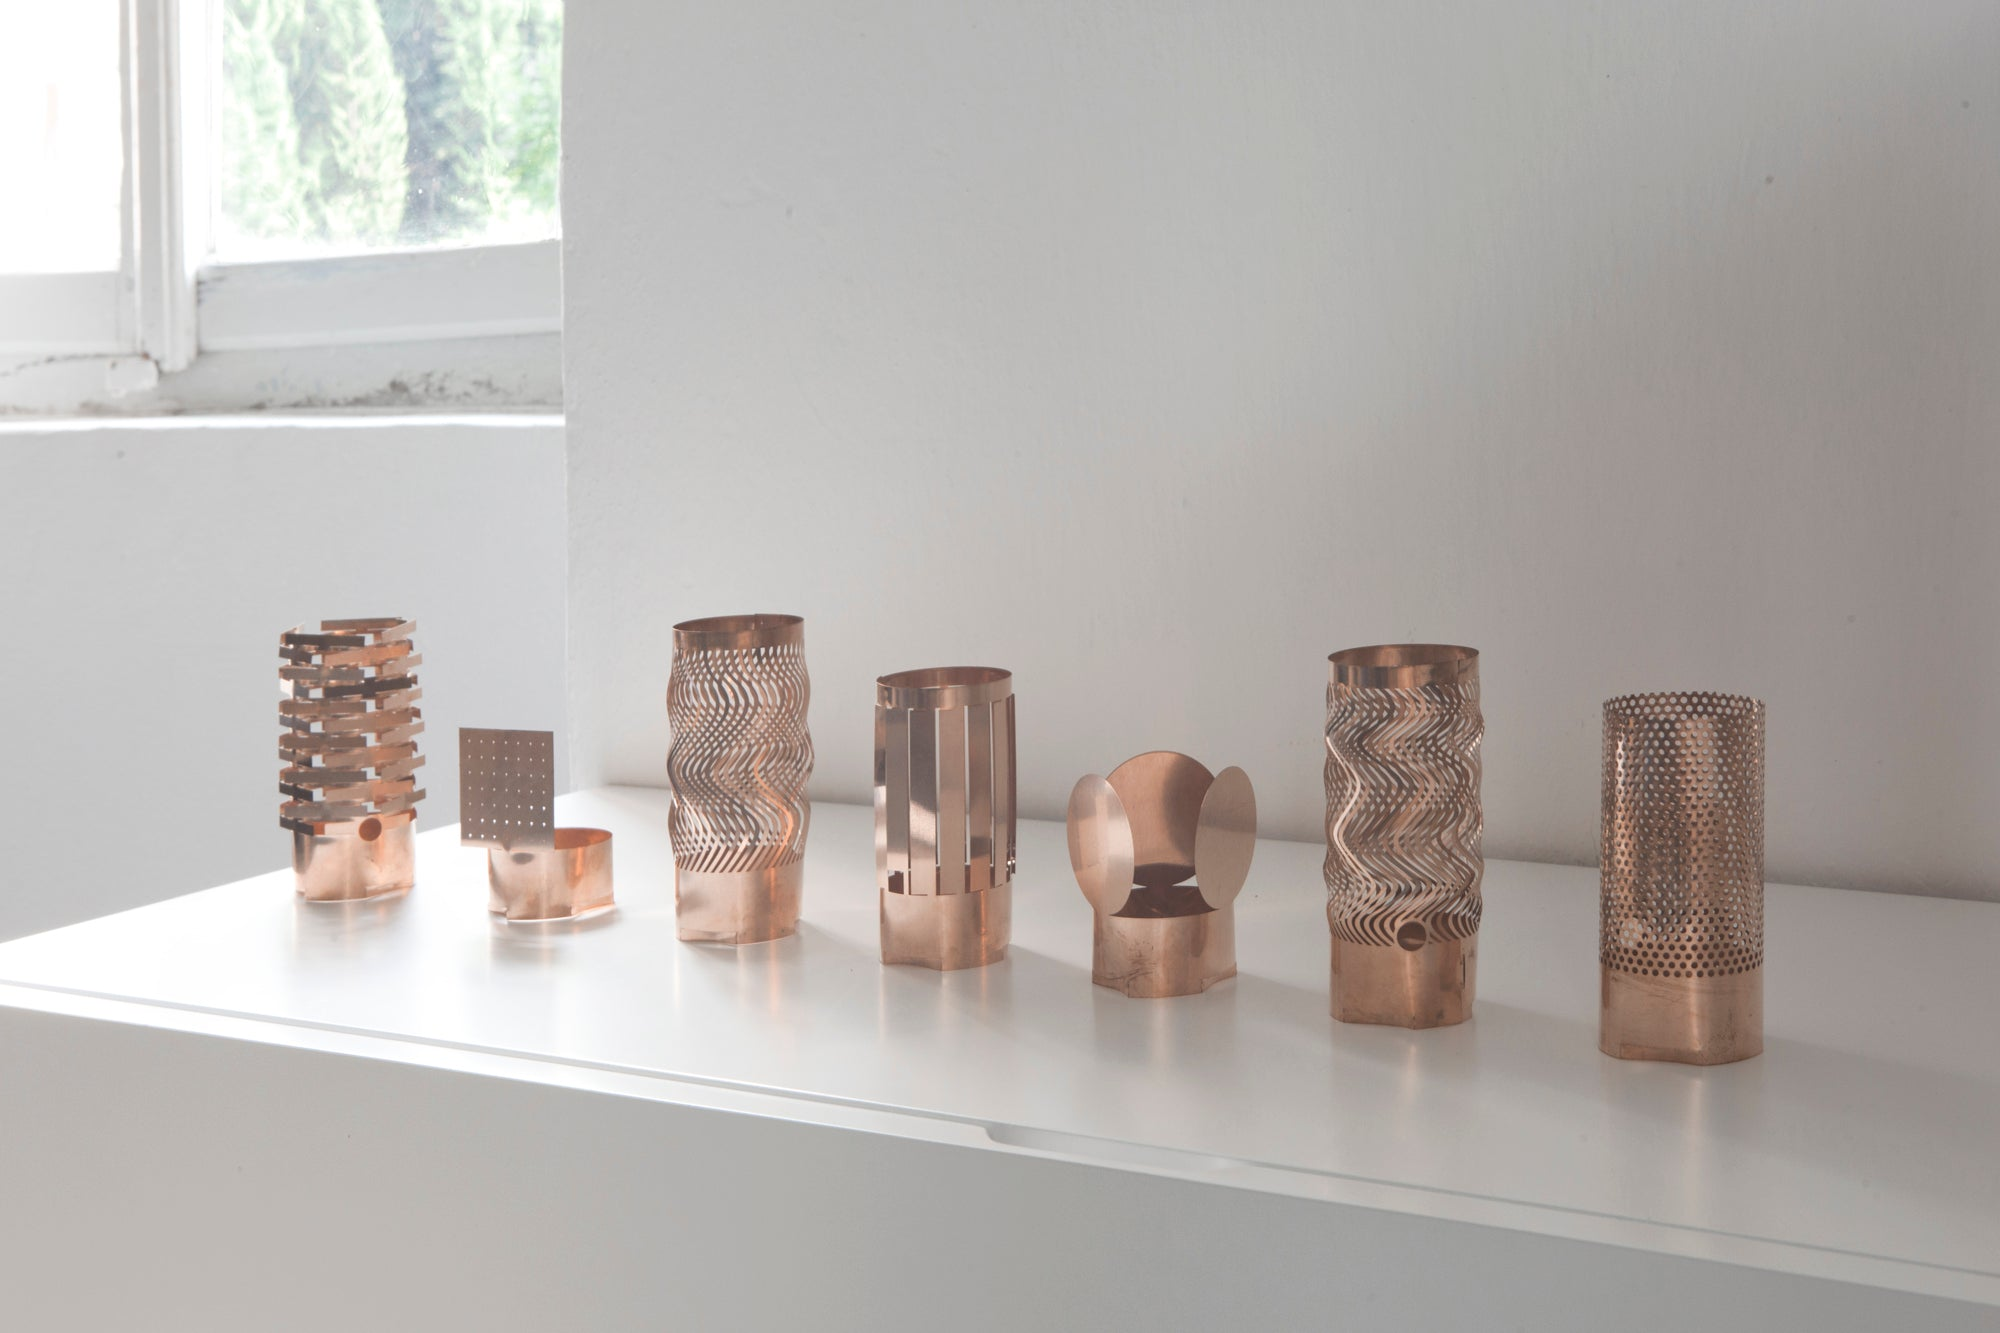 Metallodolce Ritualis bronze candle holders